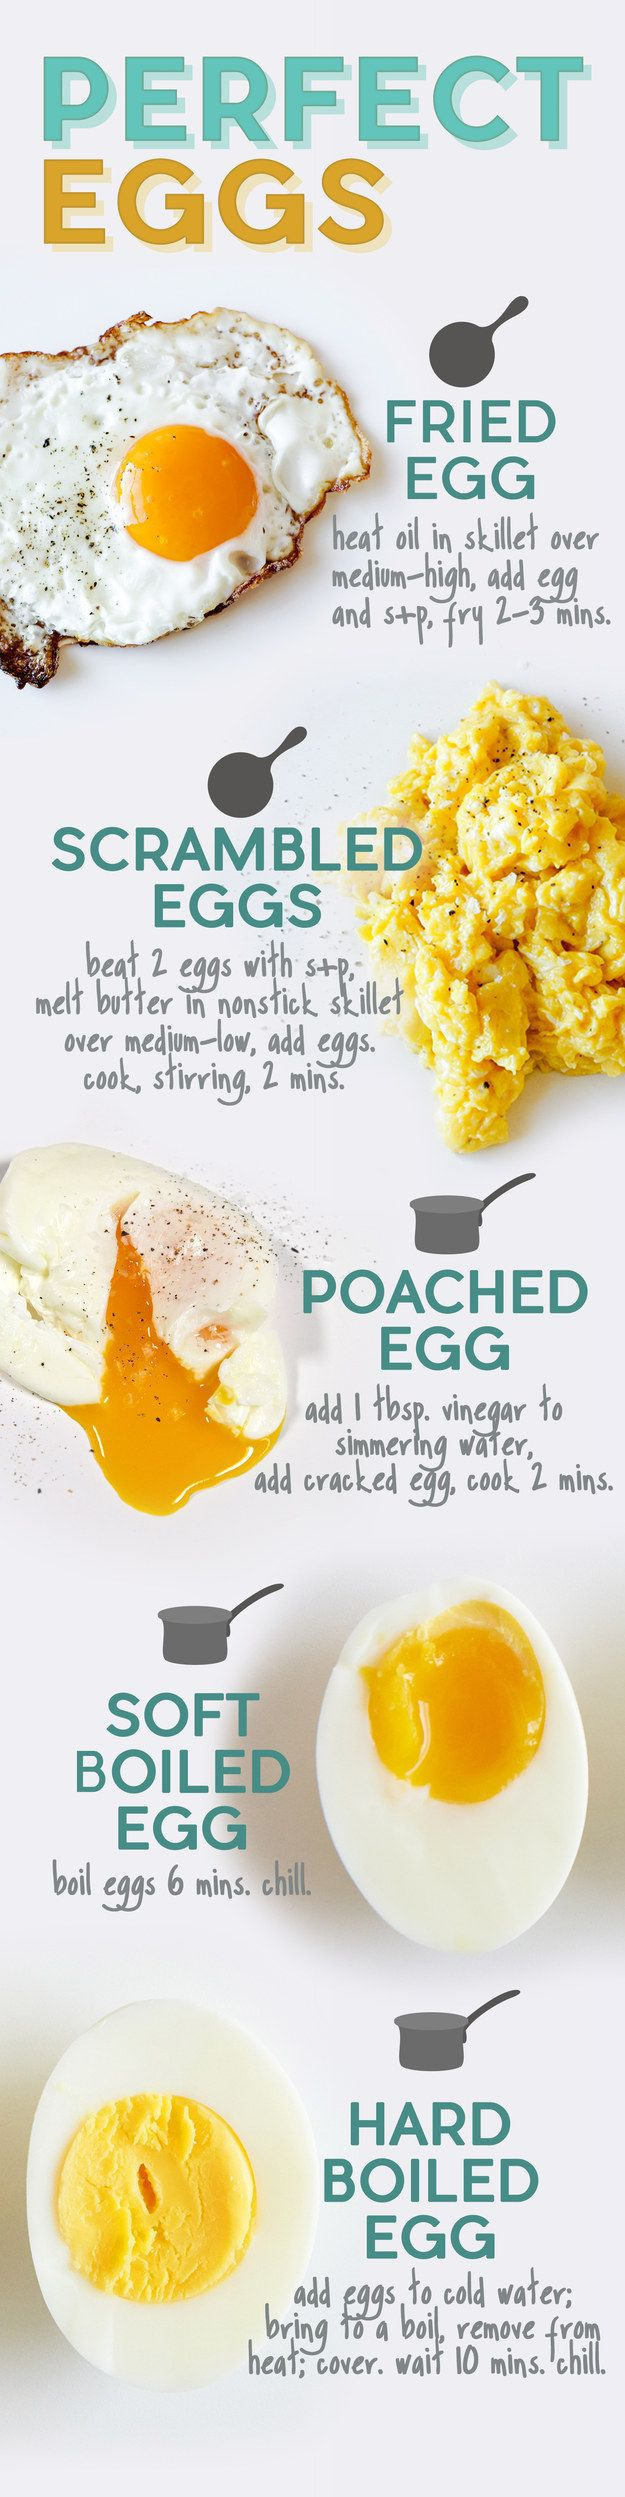 Eggs are incredibly delicious, a great source of protein — and we all know the basic ways of cooking them. (If you don't, here's a handy graphic to help you make plain eggs ~just right~.)